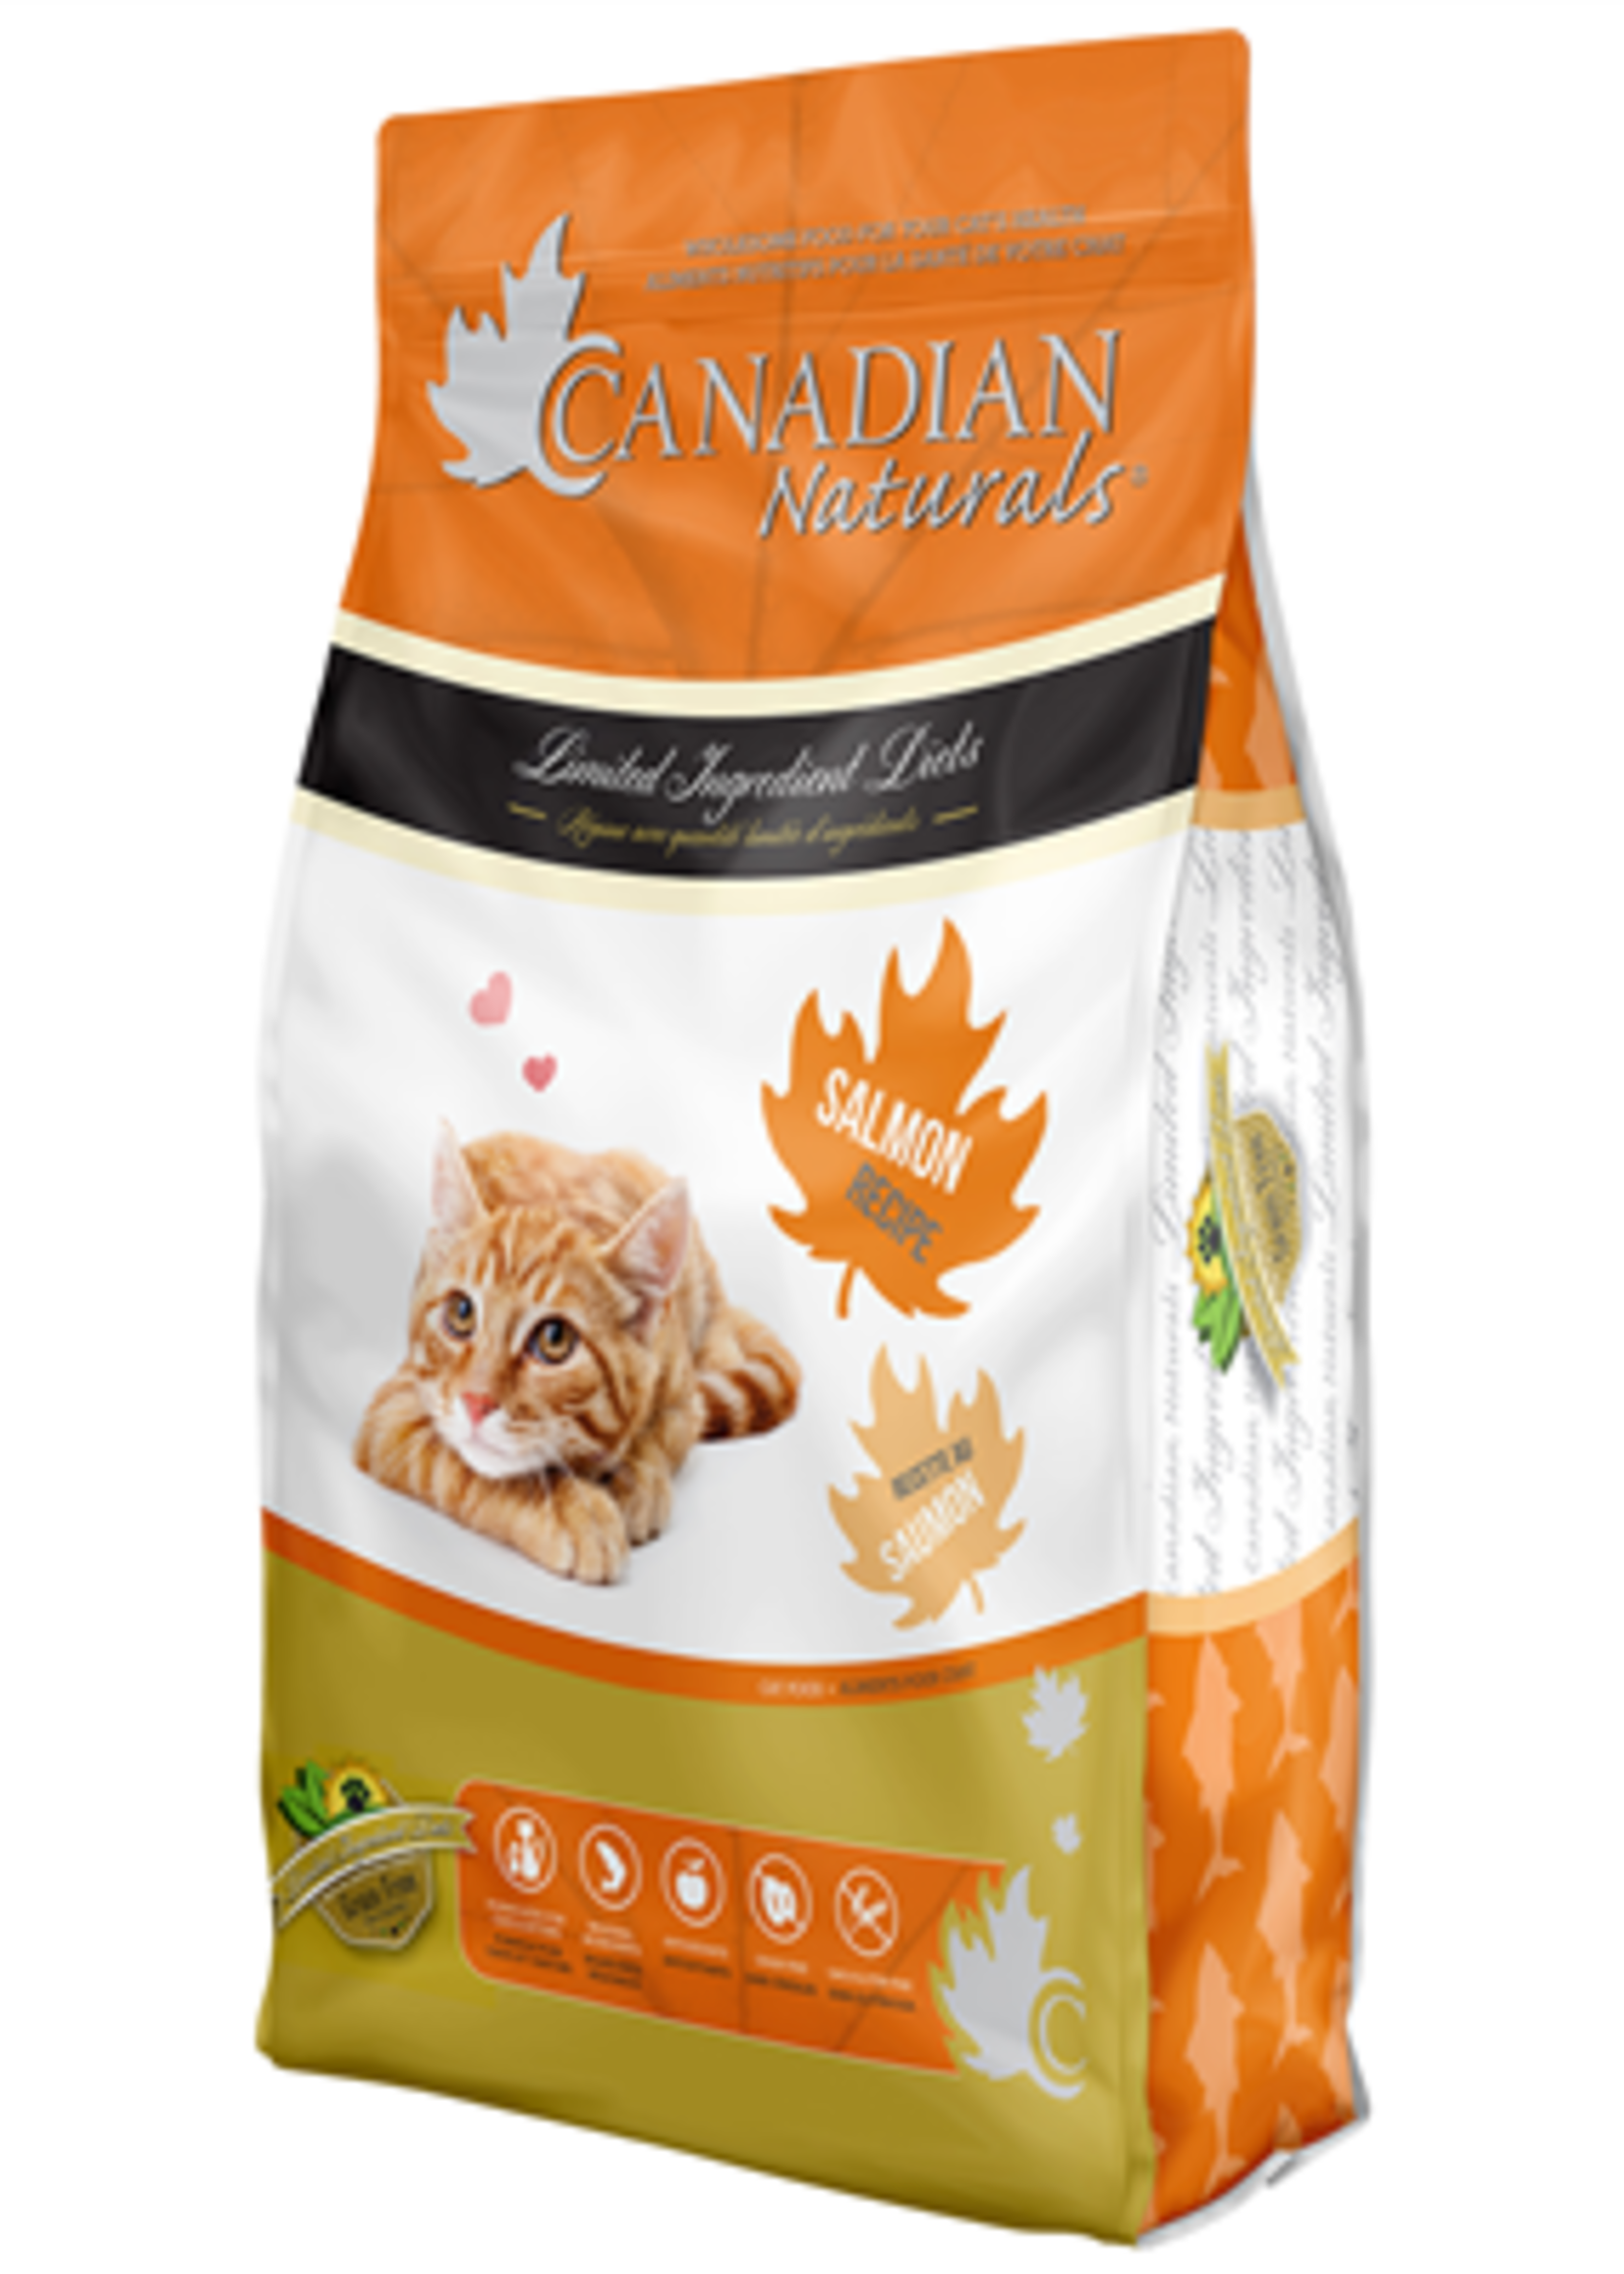 Canadian Naturals® CANADIAN NATURALS LIMITED INGREDIENT DIET GRAIN FREE SALMON 3lbs